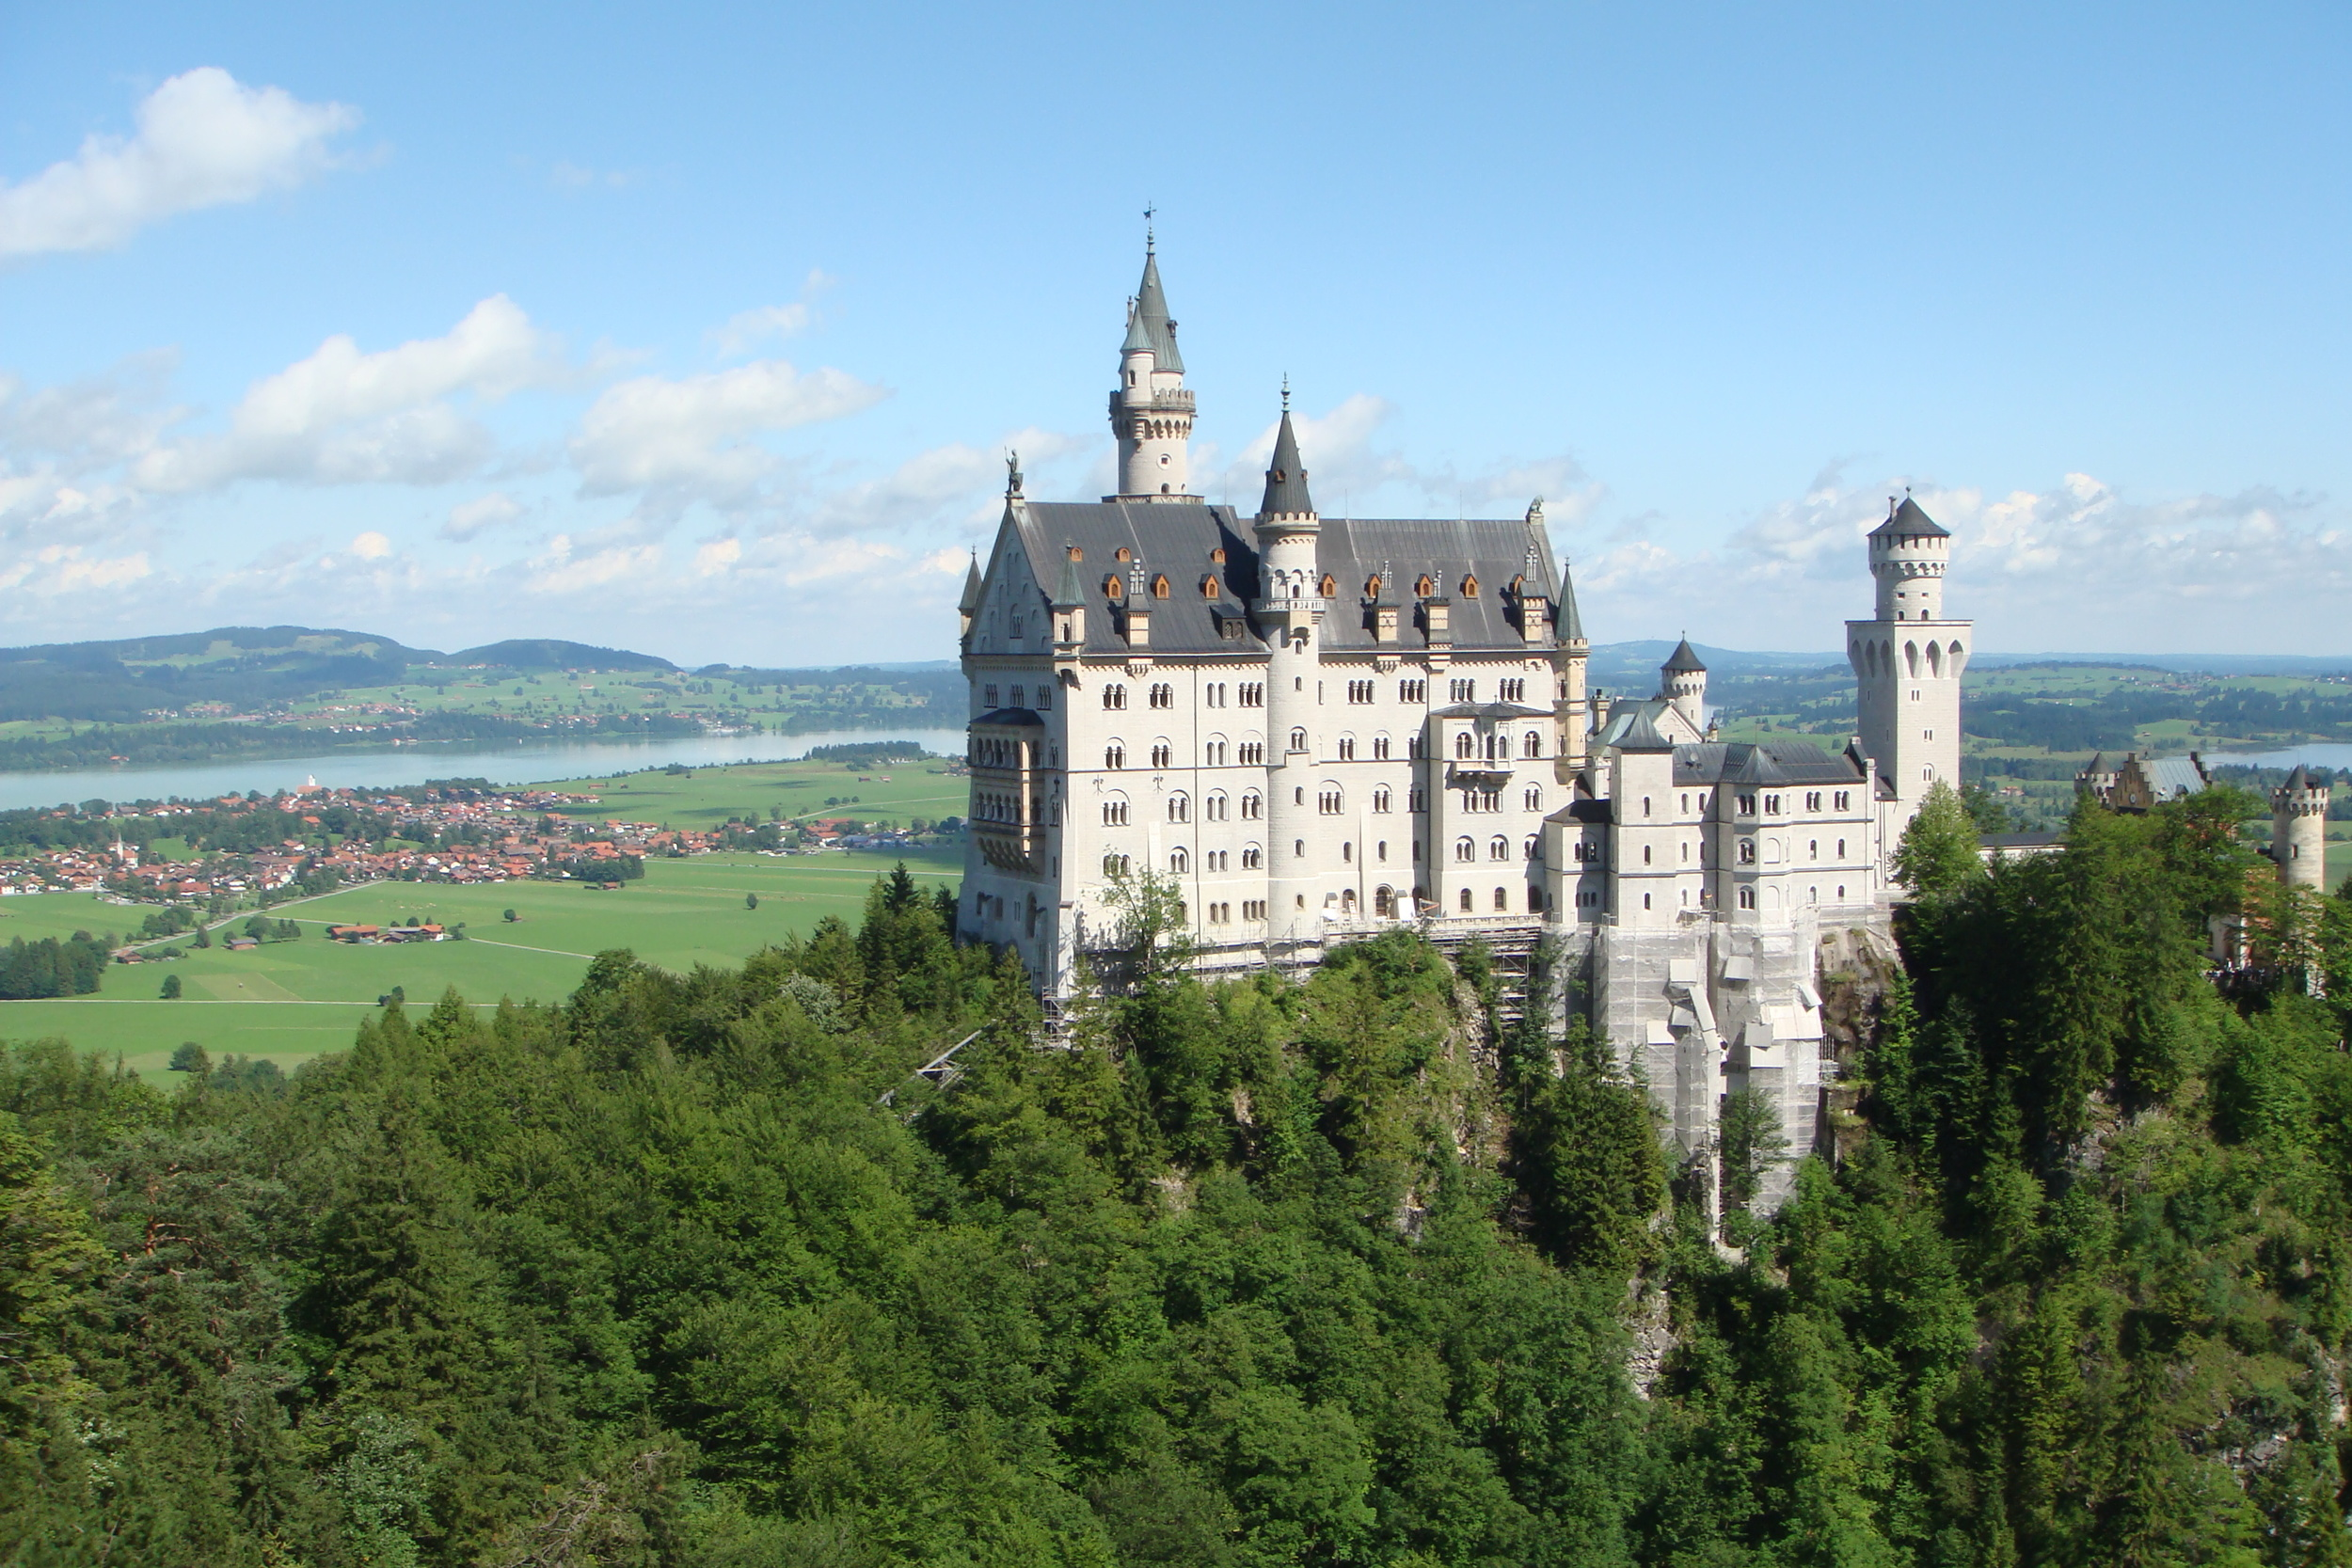 Neuschwanstein is the fairytale castle of King Ludwig.